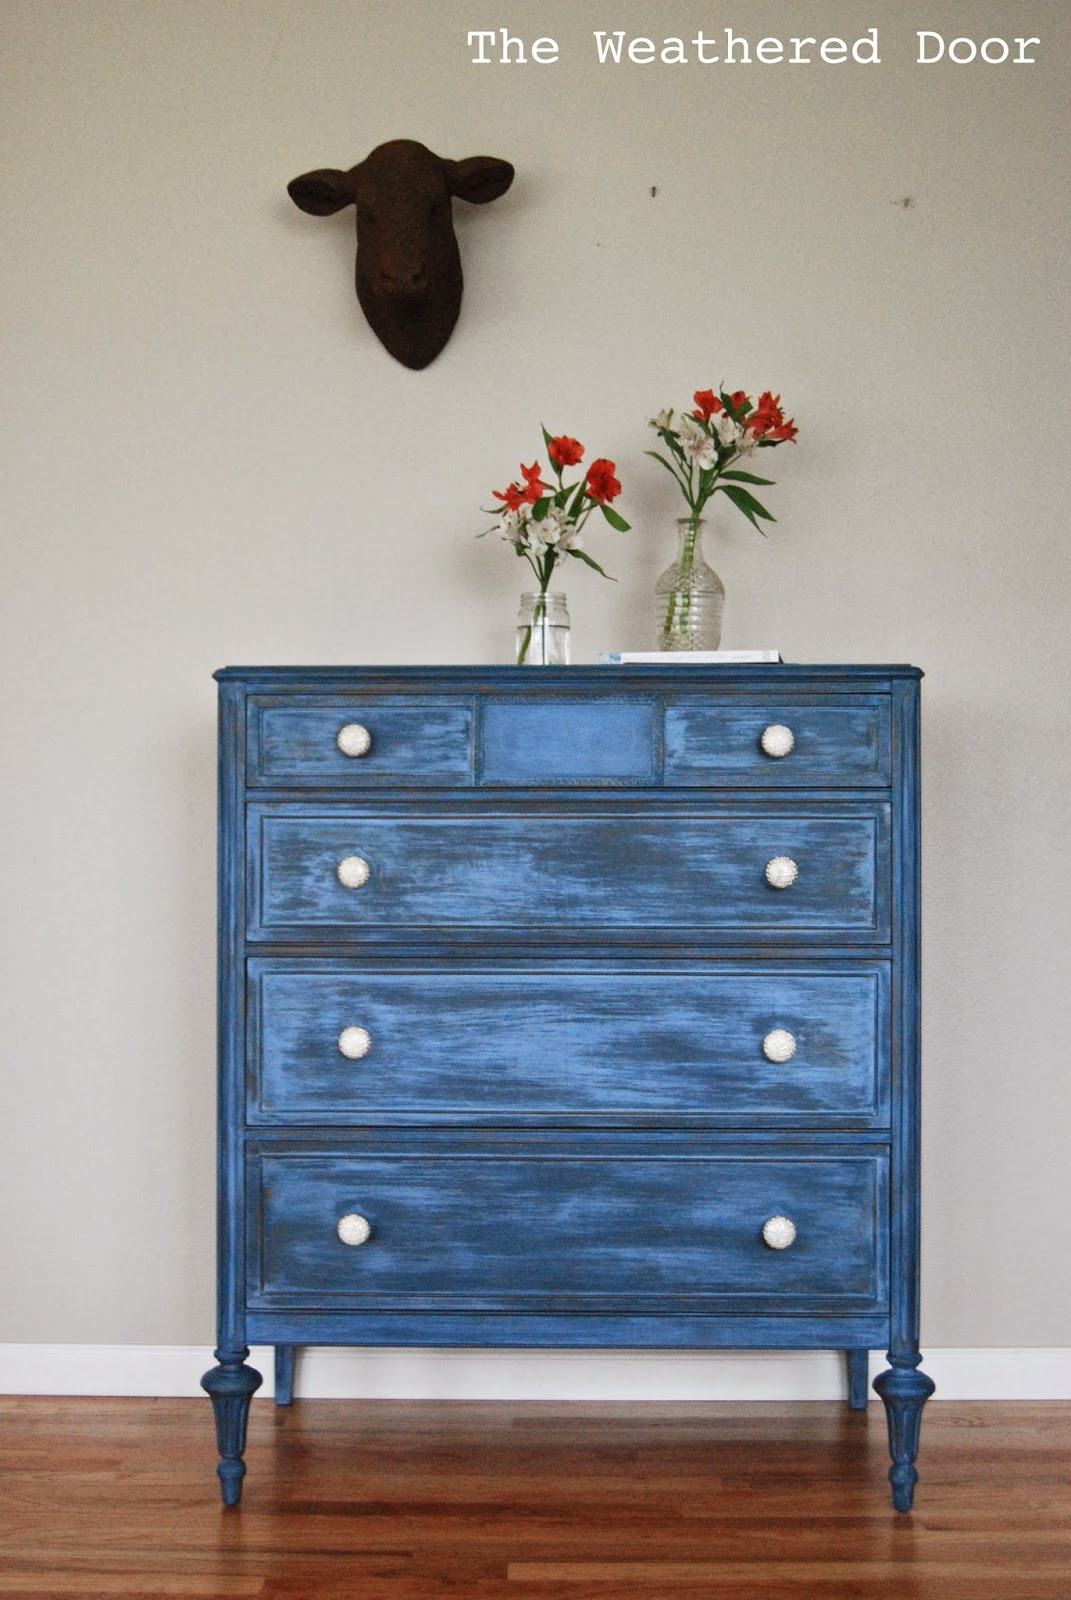 paint colors for antique furniture antique furniture - Bedroom Furniture Paint Color Ideas. Adorable Painting Wicker